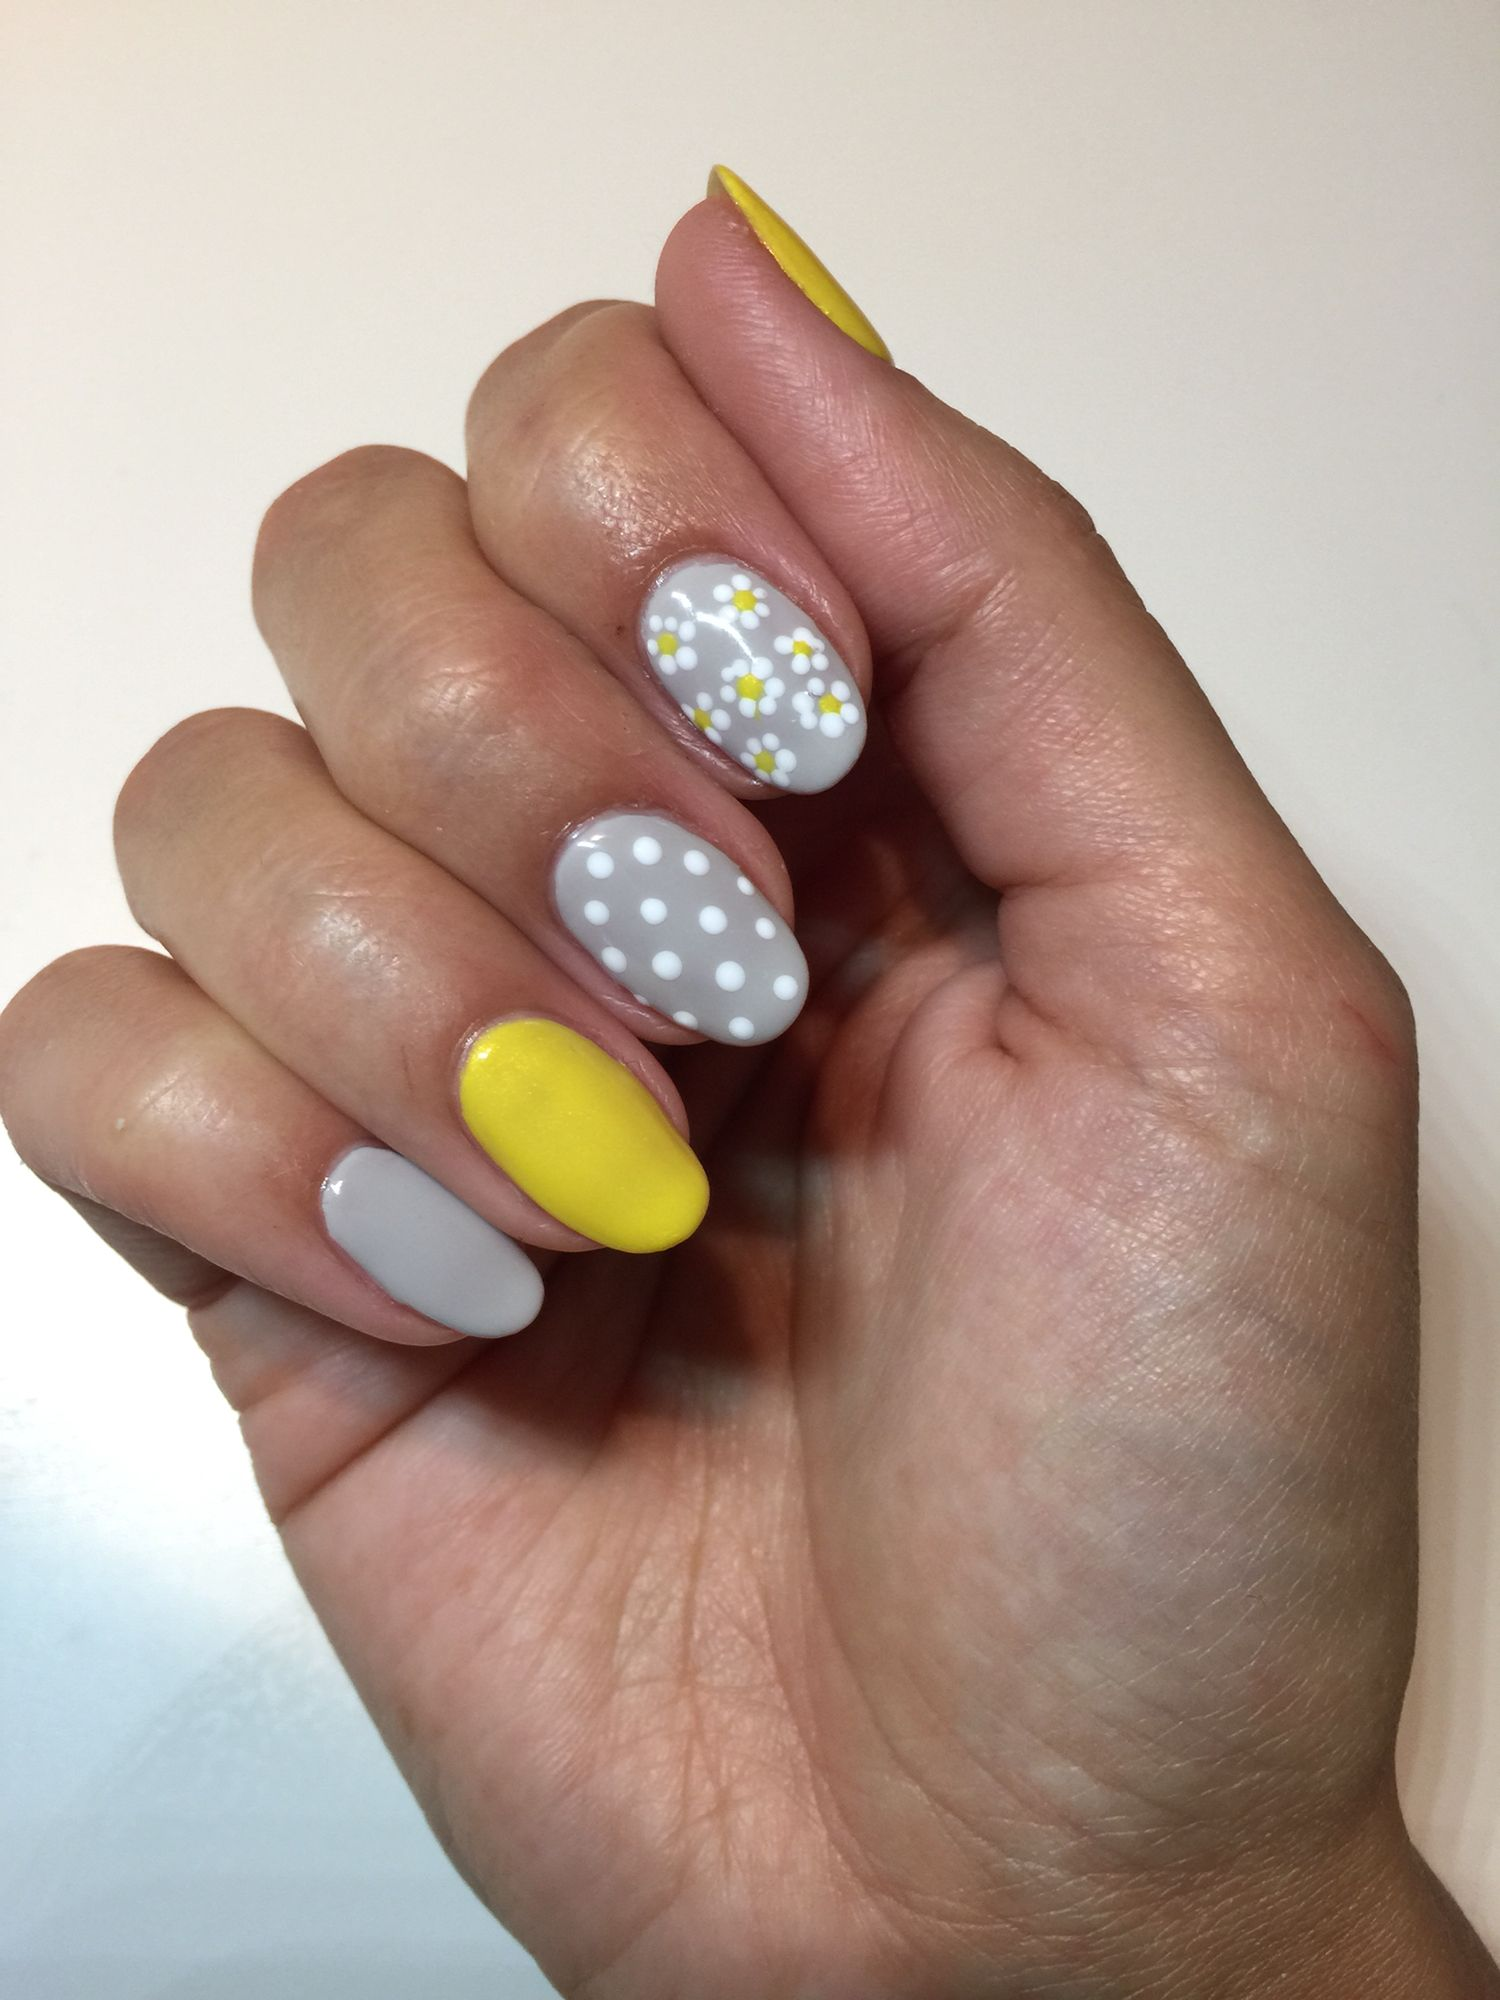 Spring time nails with dots and flowers using CND Shellac in Bicycle ...